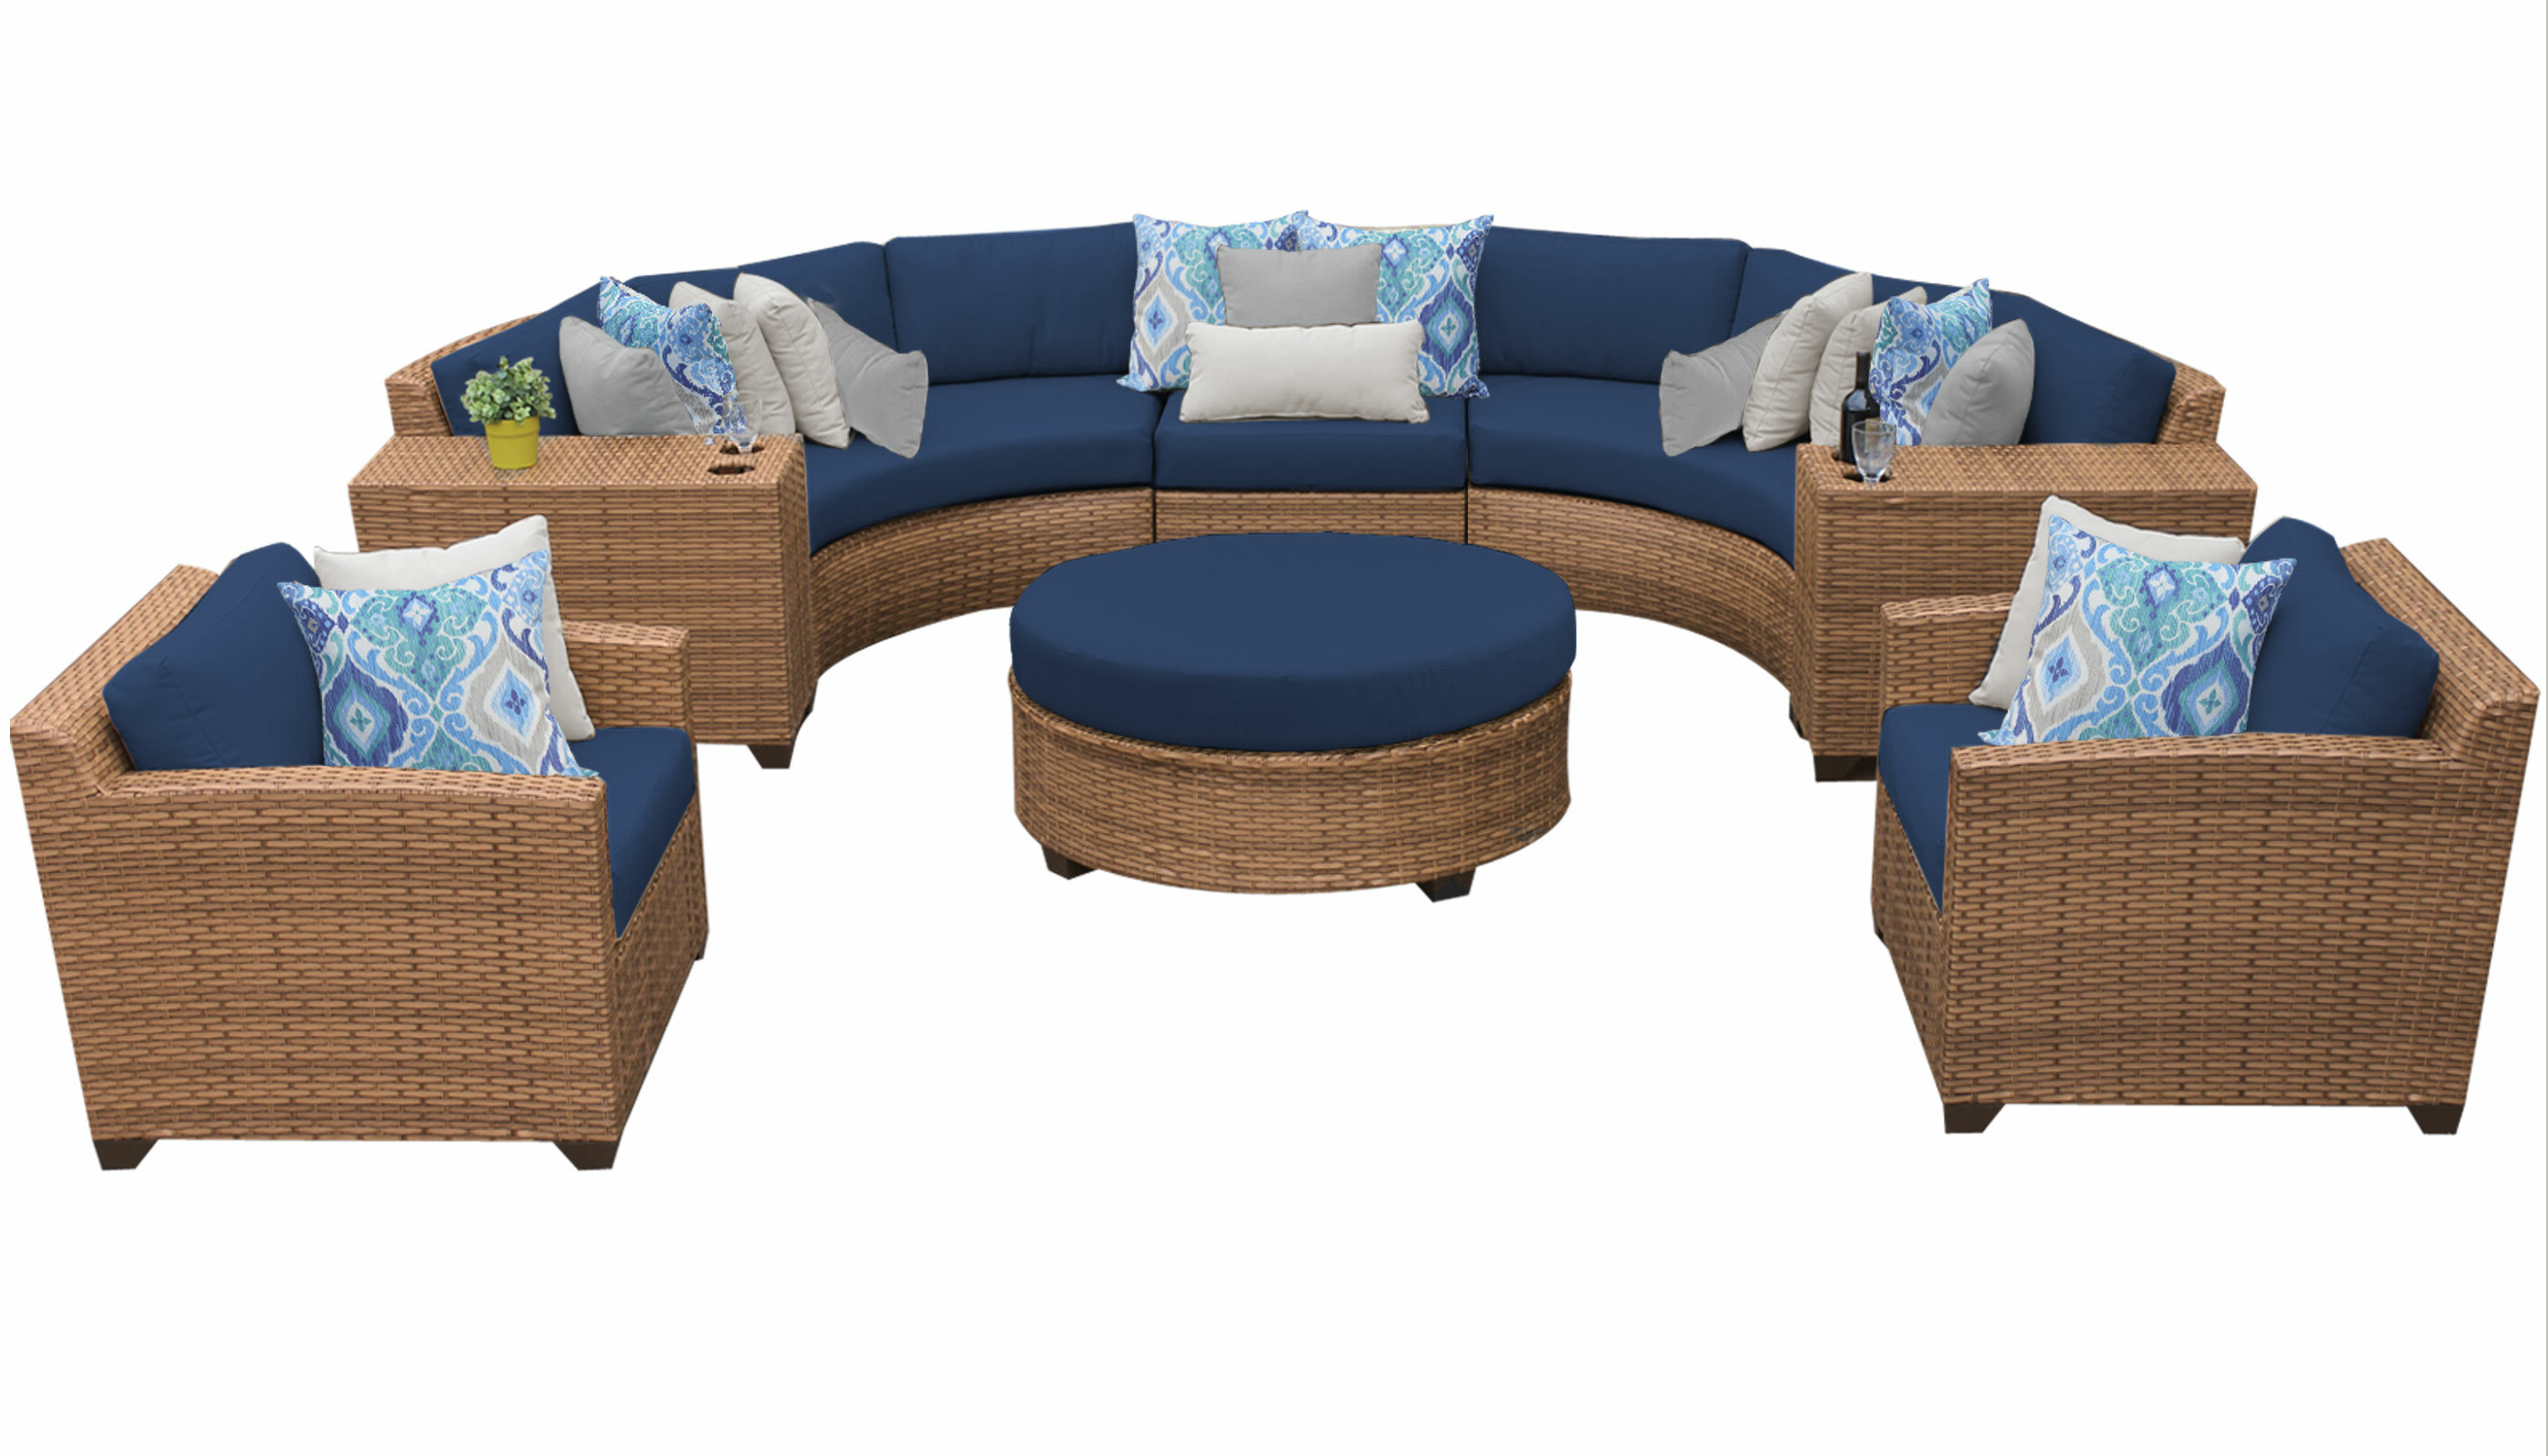 2020 Waterbury Curved Armless Sofa With Cushions Within Waterbury 8 Piece Sectional Seating Group With Cushions (View 4 of 20)